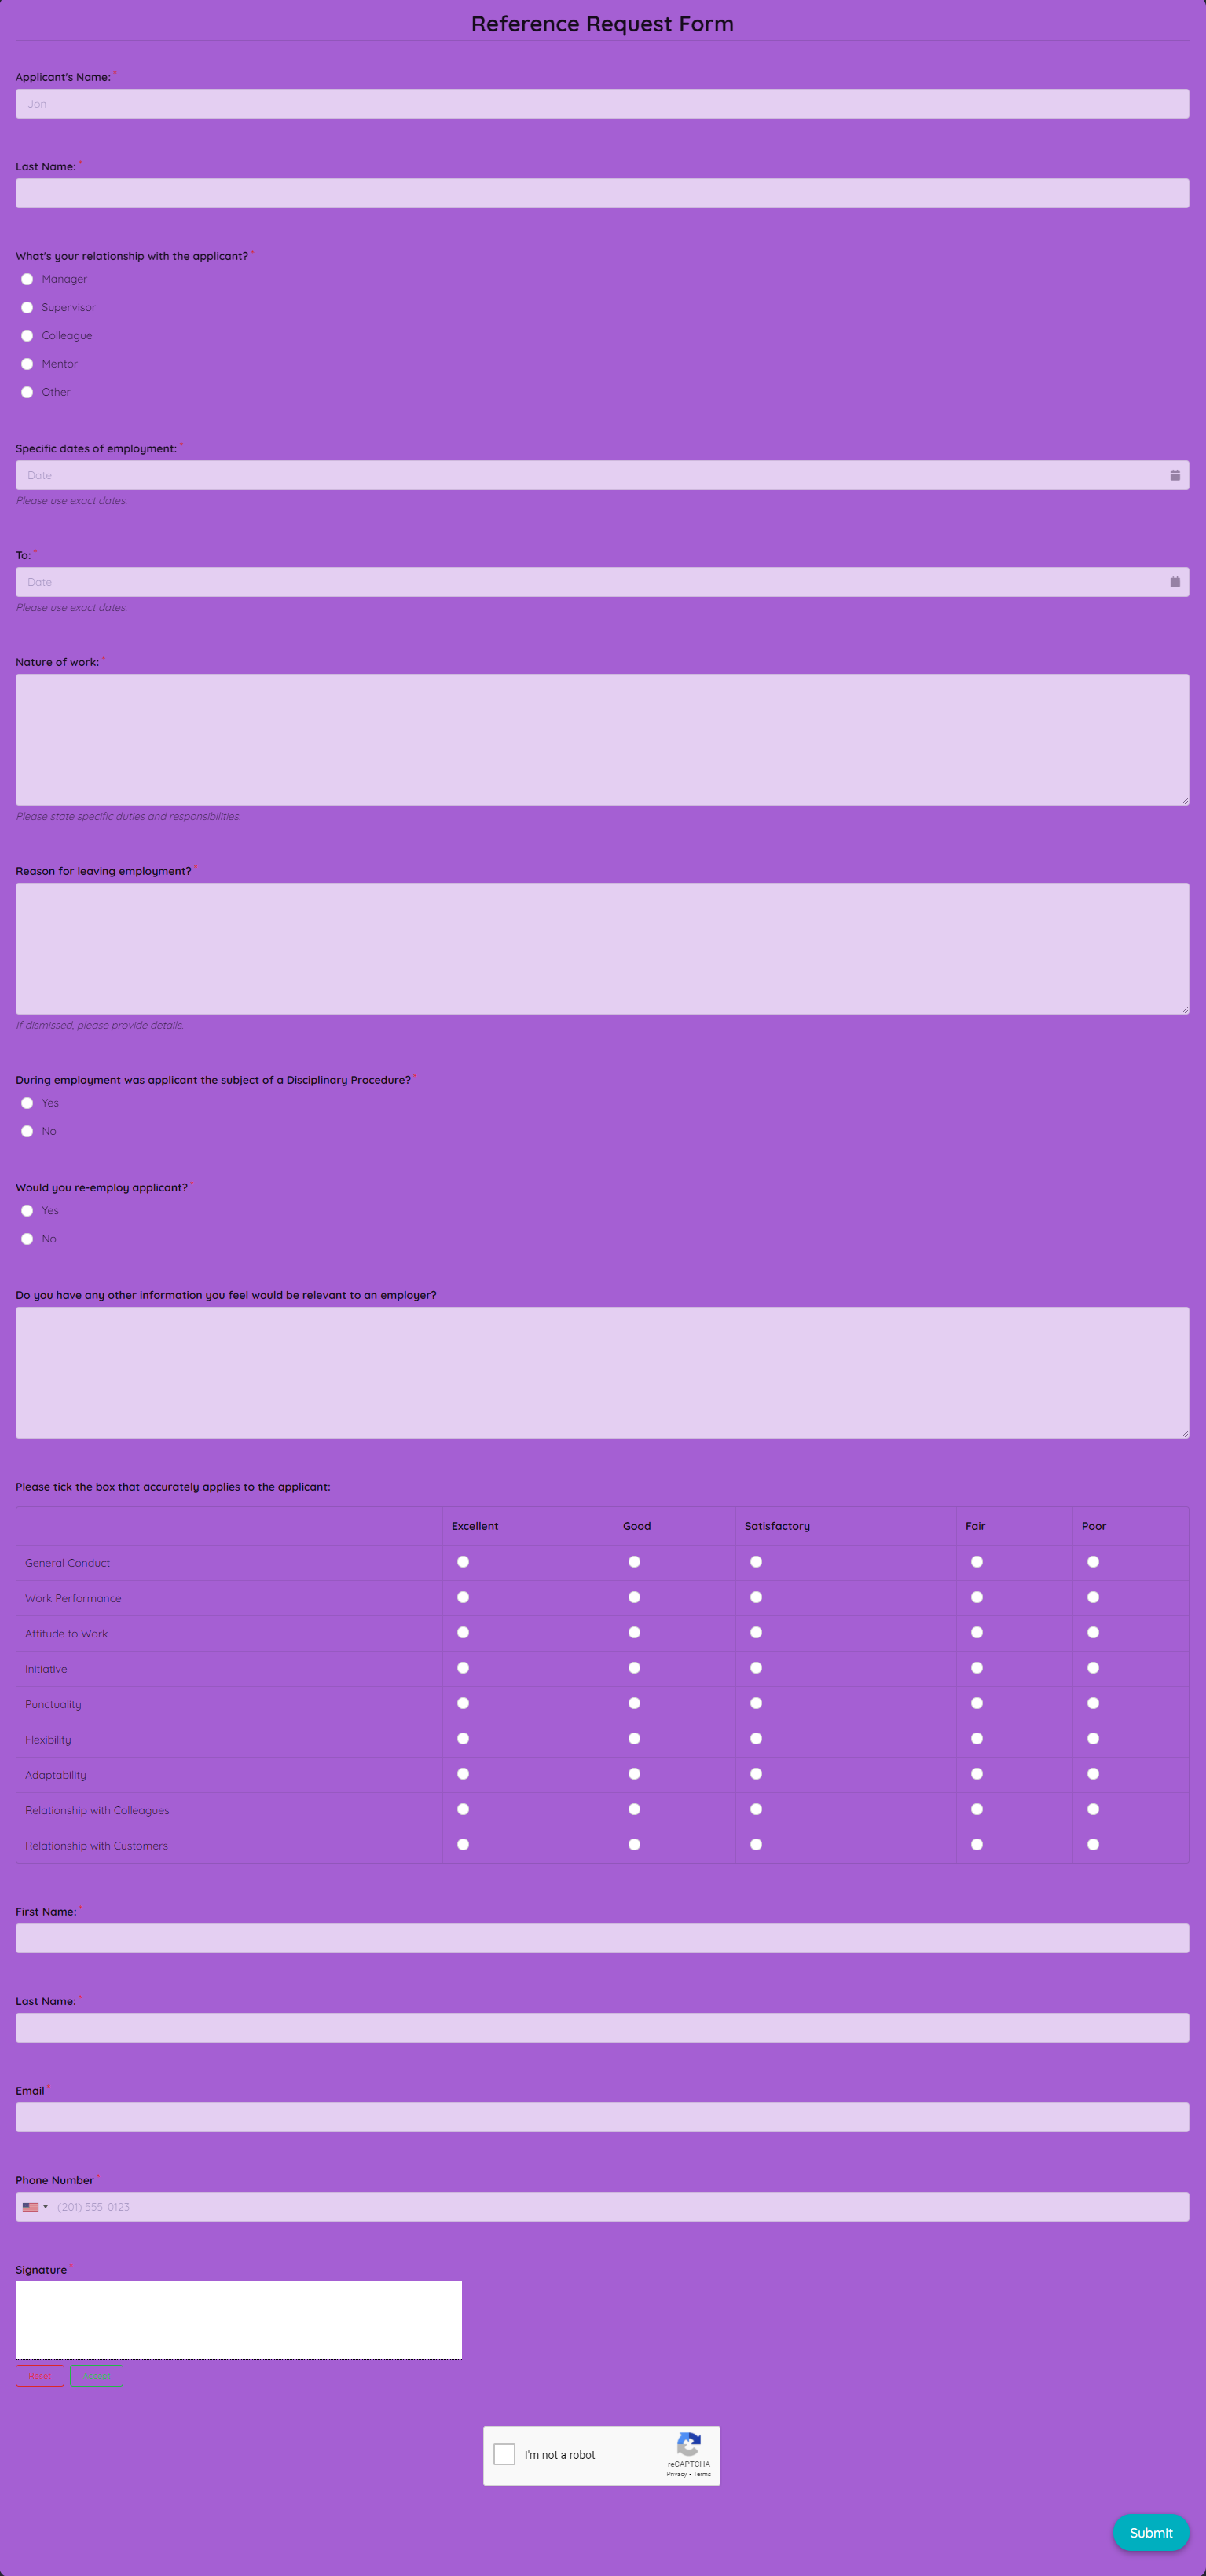 Reference Request Form Template template